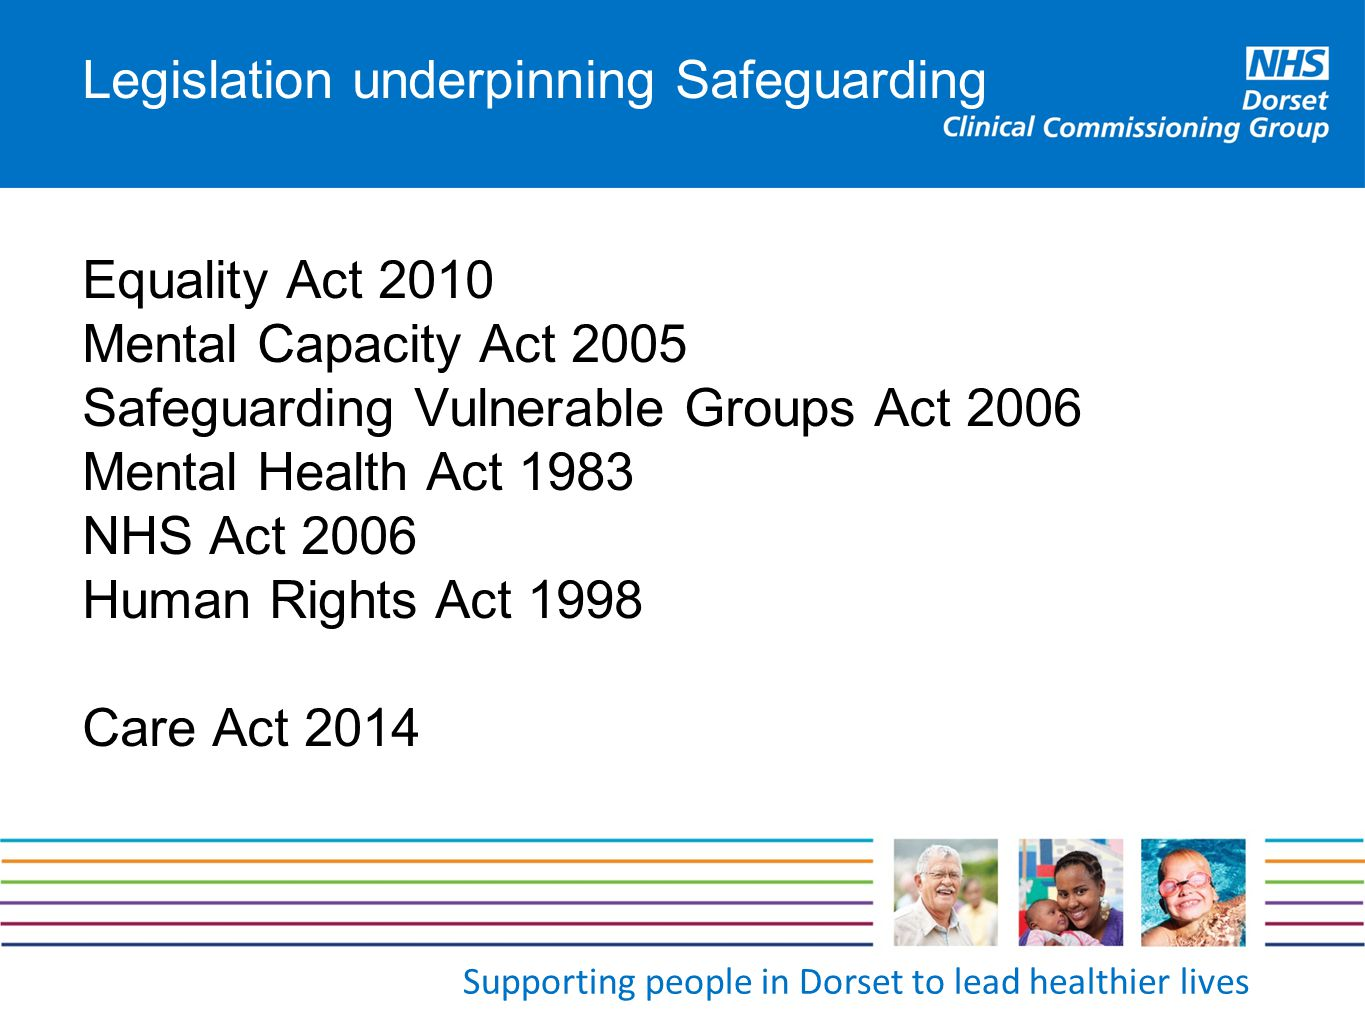 Legislation underpinning Safeguarding